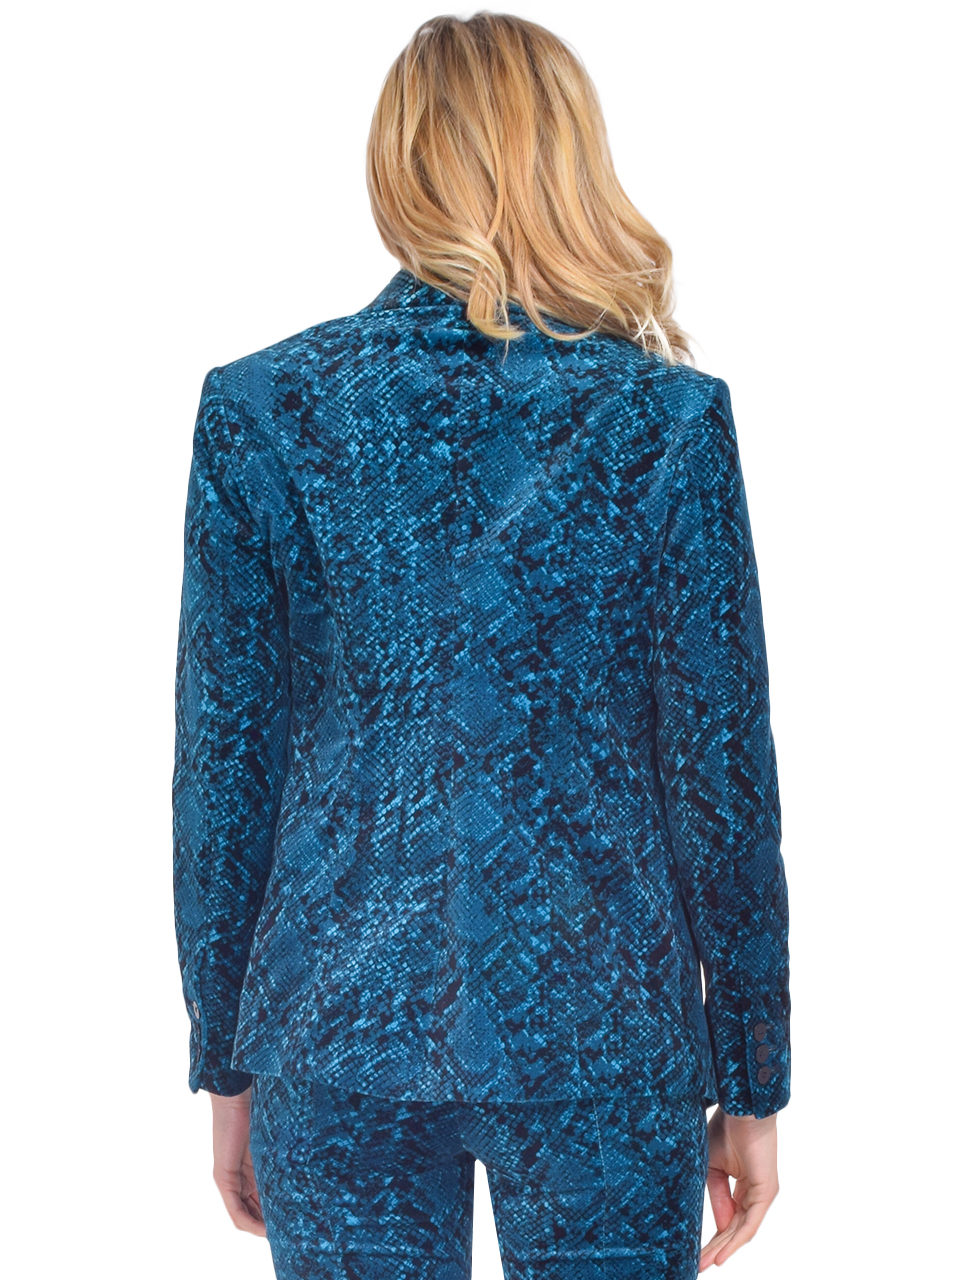 MISA Catroux Jacket in Teal Snake Back View